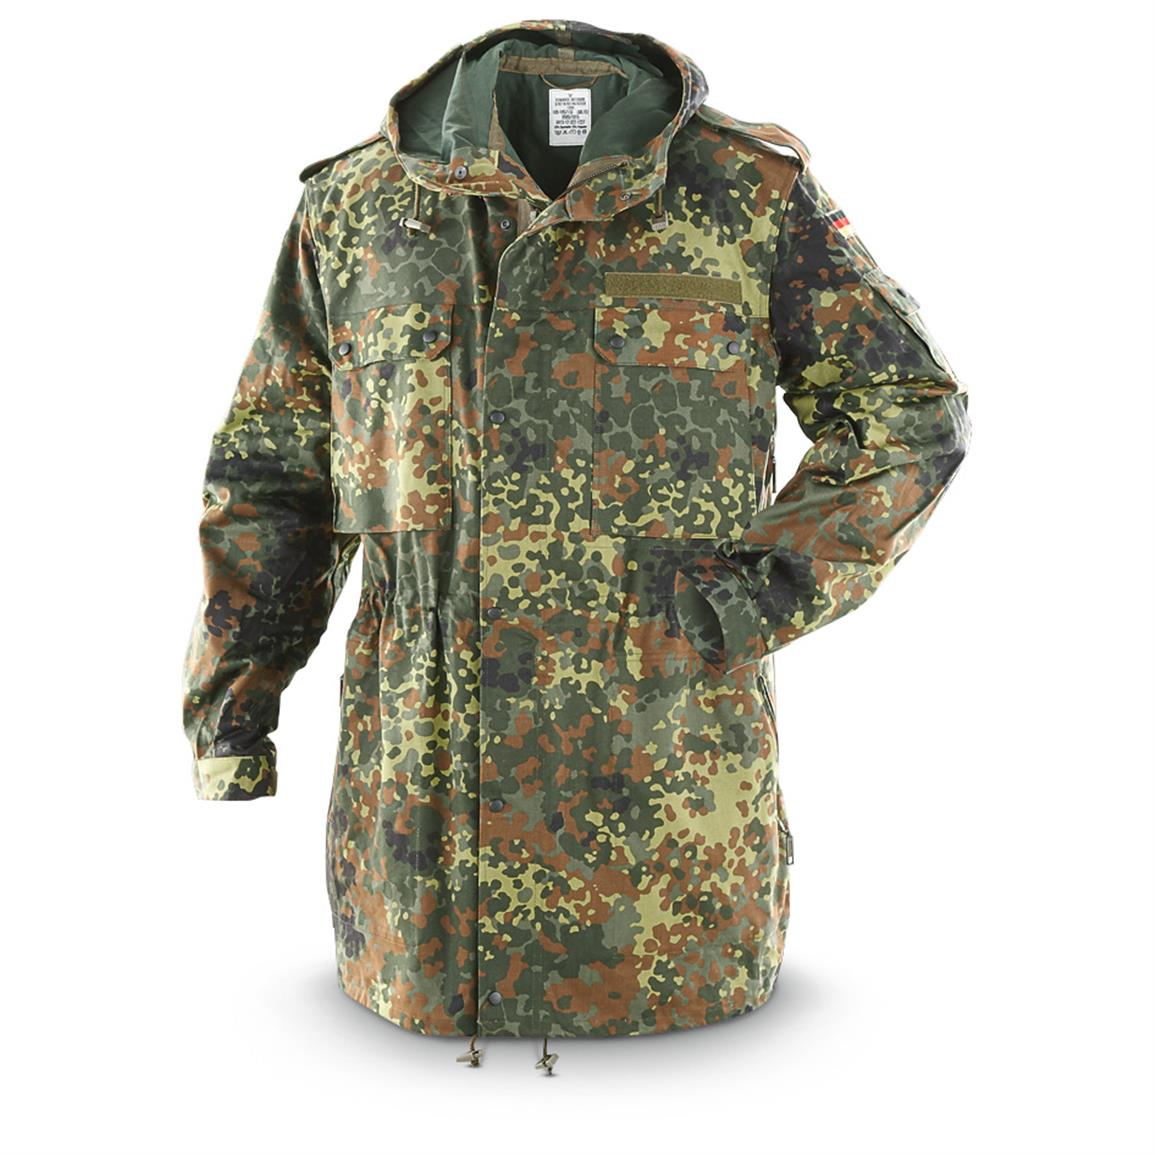 New German Military Surplus GORE-TEX Parka